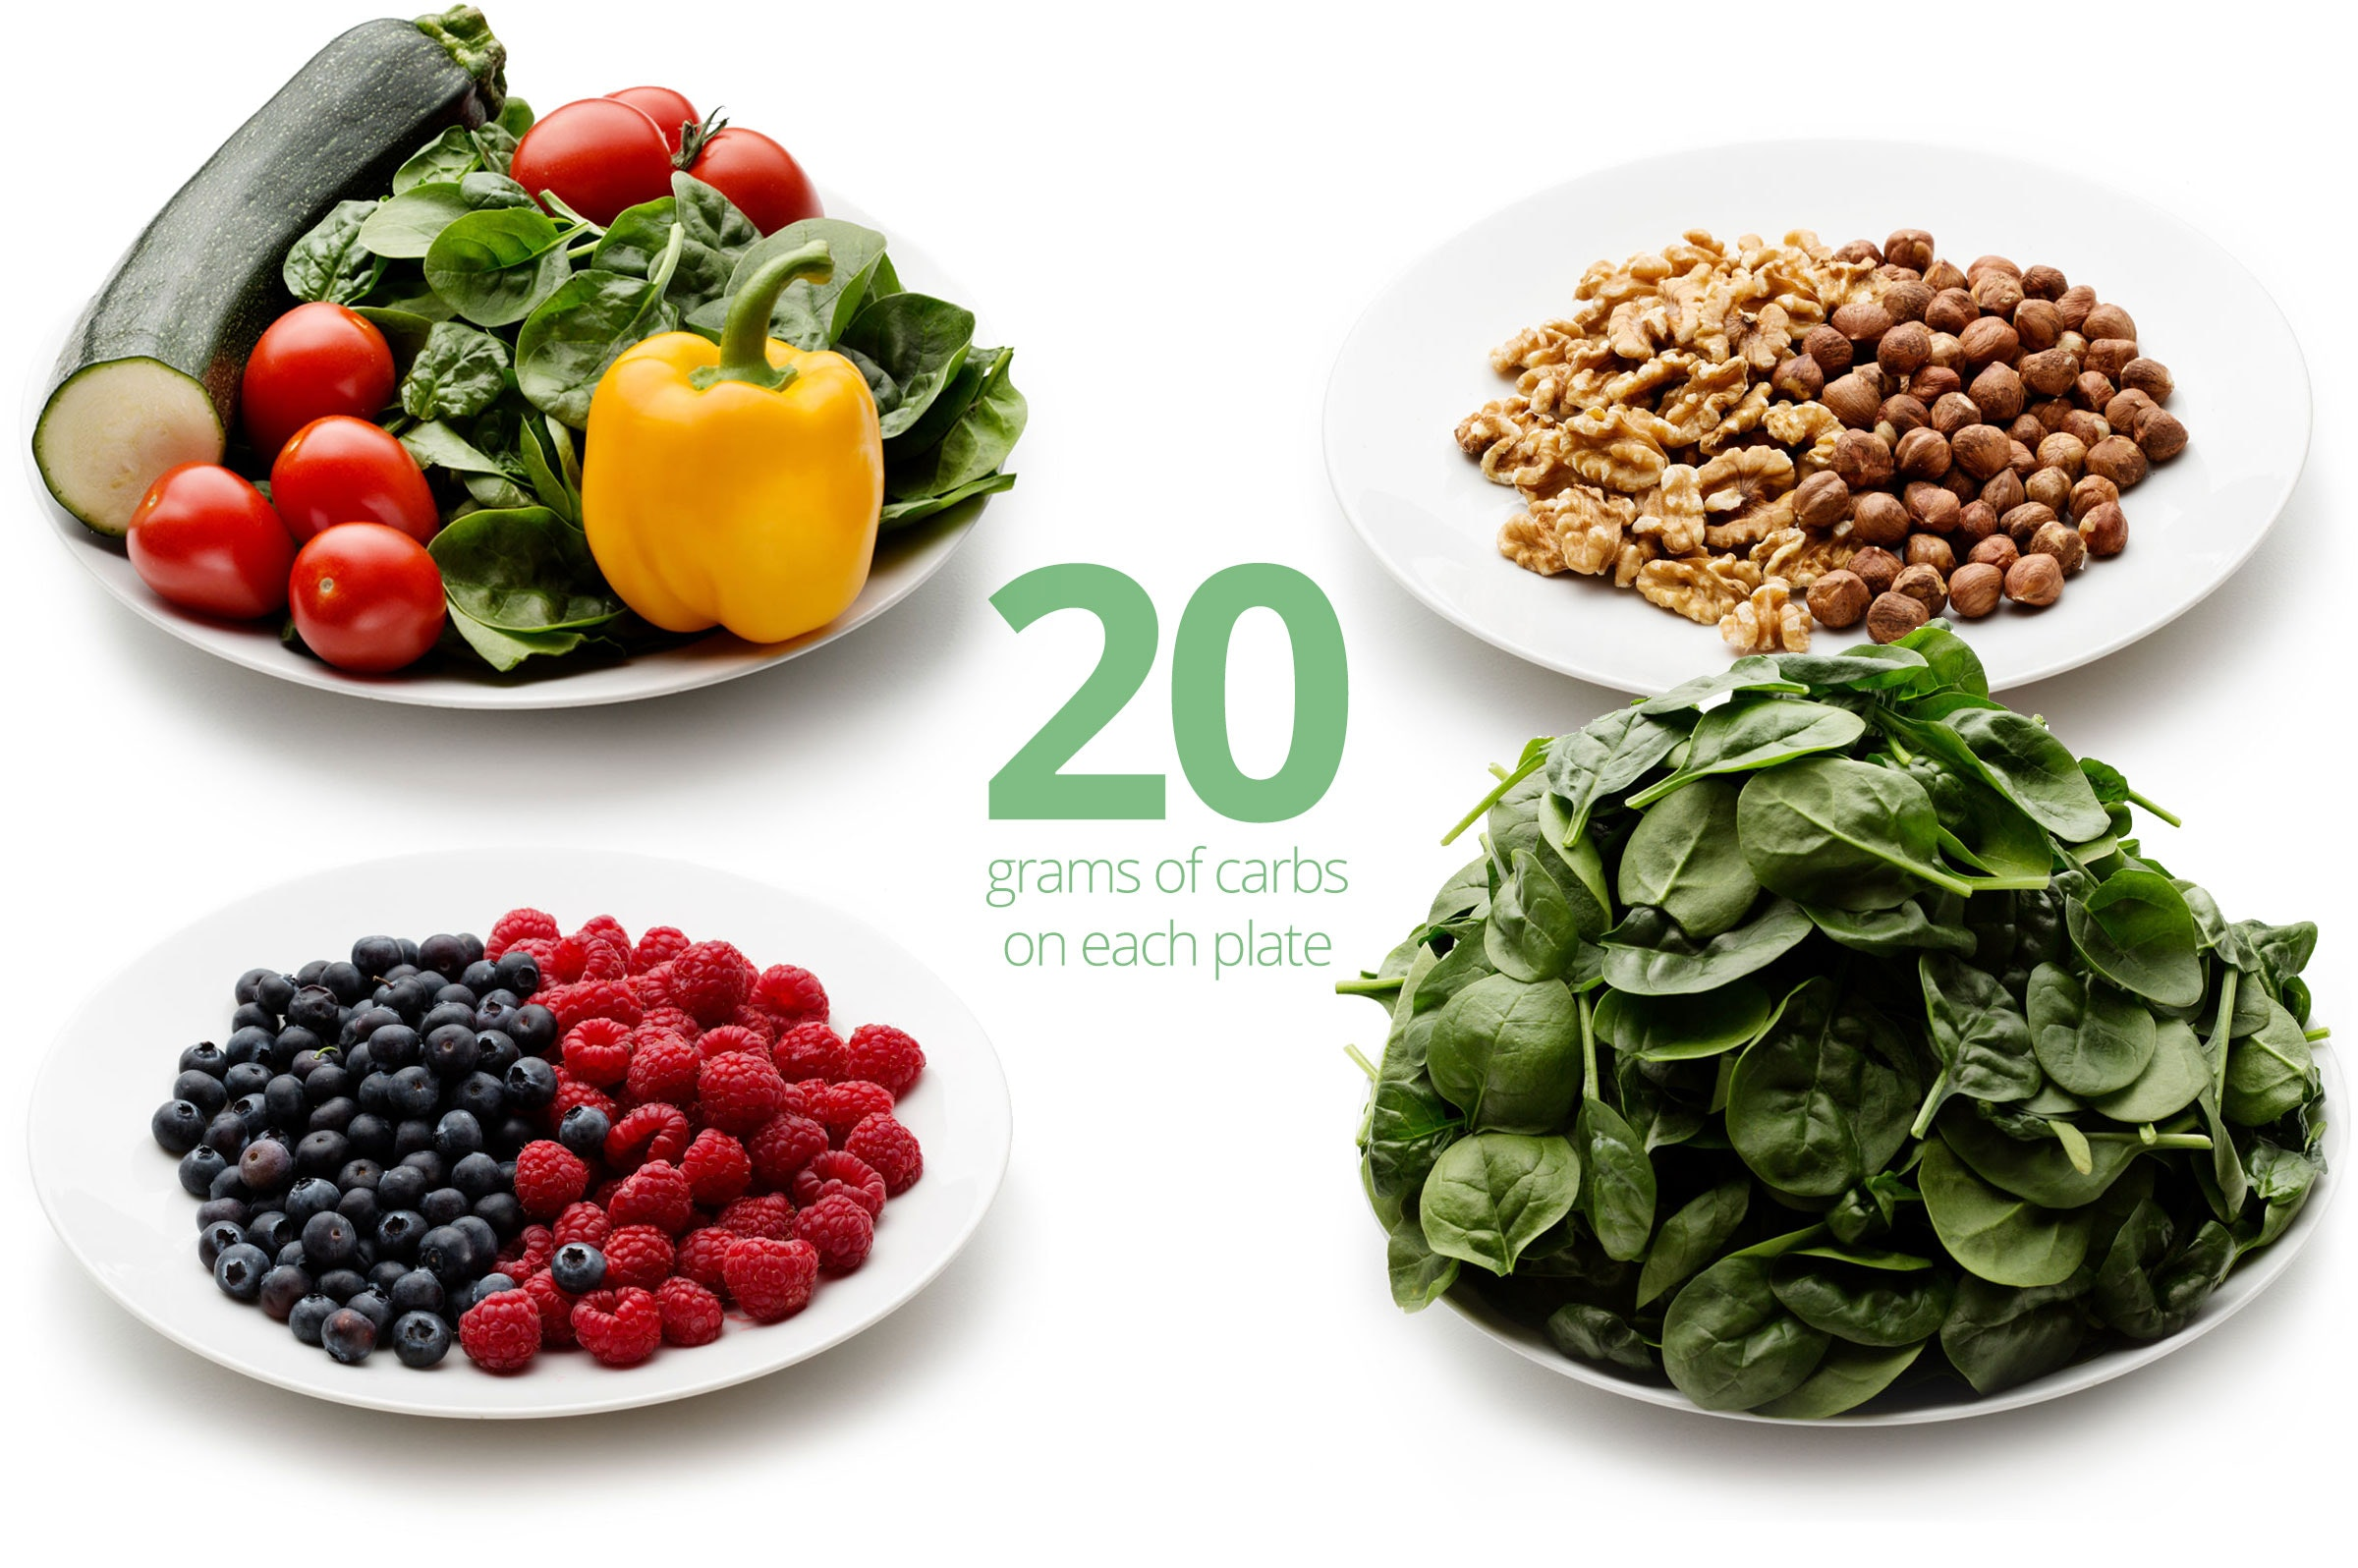 How many grams of carbs in 1 cup spinach